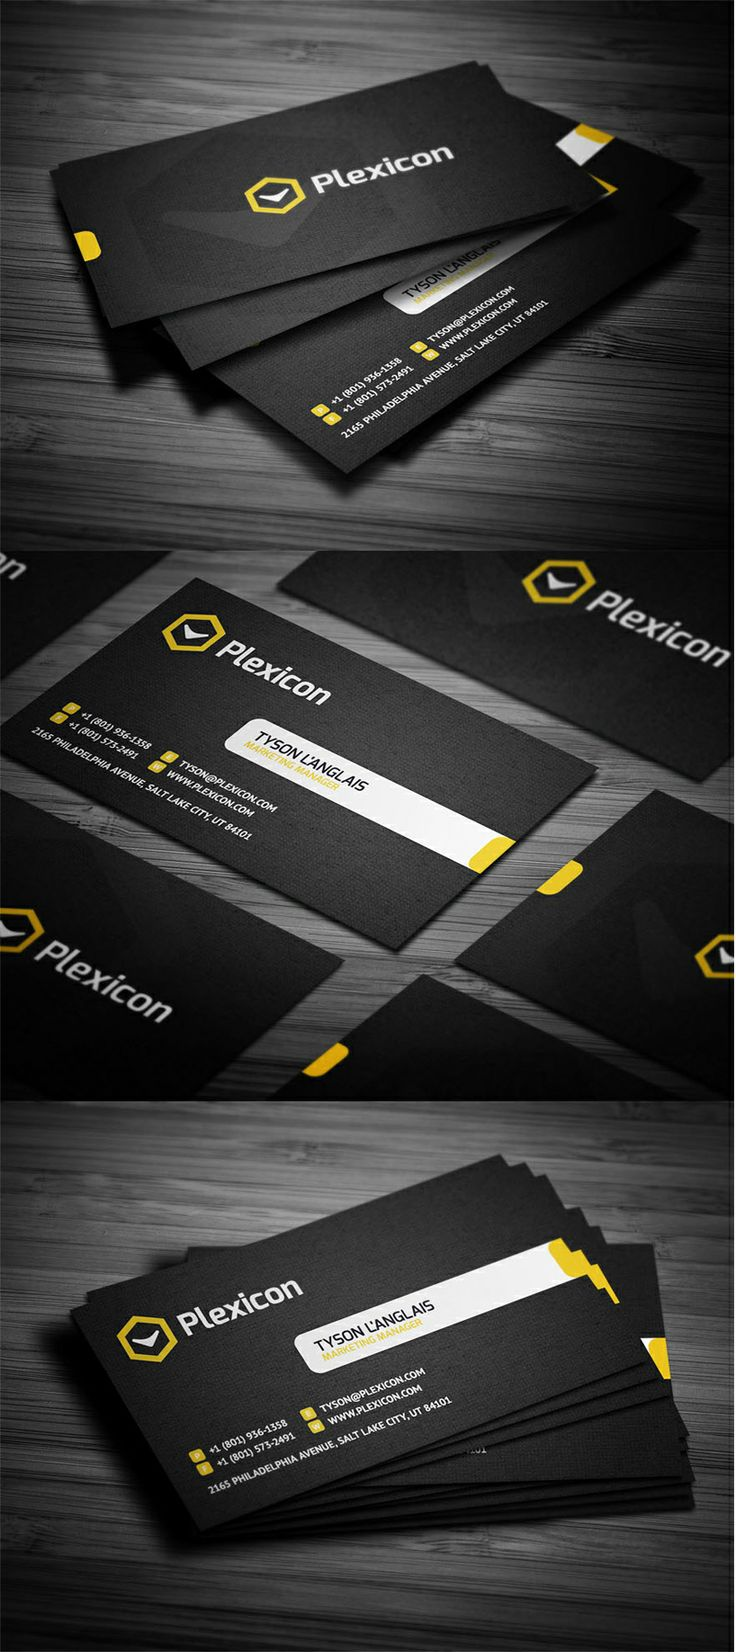 112 best business card design images on pinterest graphics 112 best business card design images on pinterest graphics beautiful things and business cards magicingreecefo Choice Image